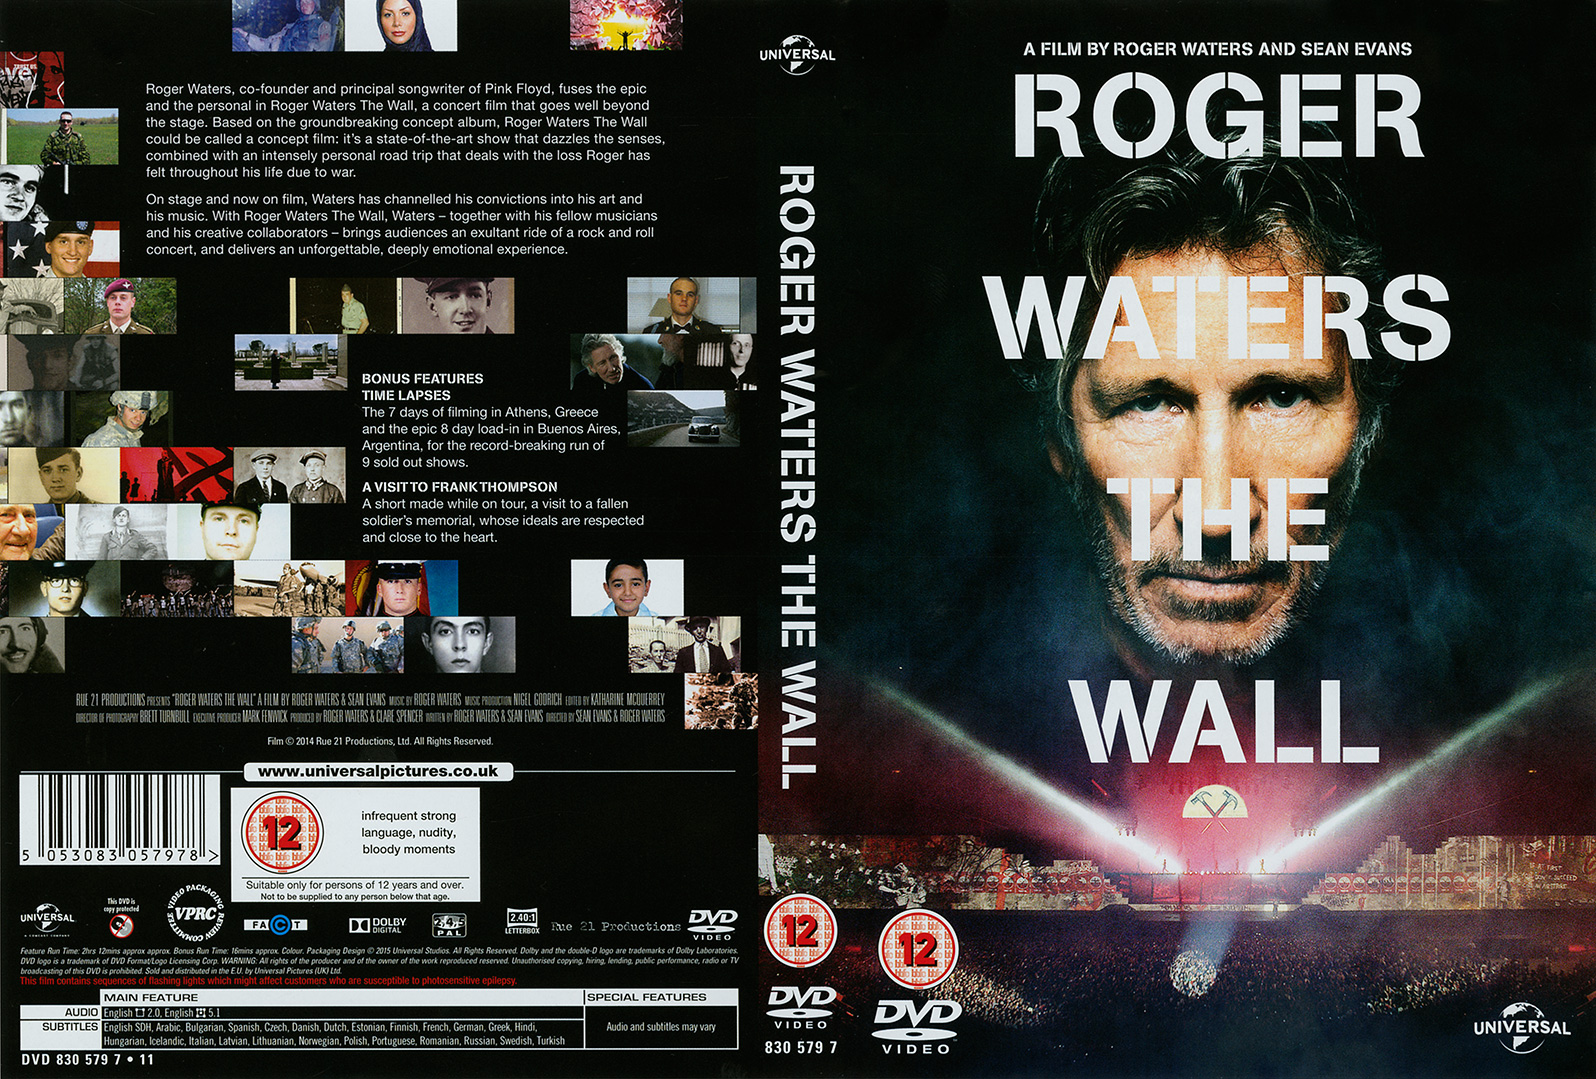 Pink Floyd Archives-E.U. Roger Waters DVD Discography